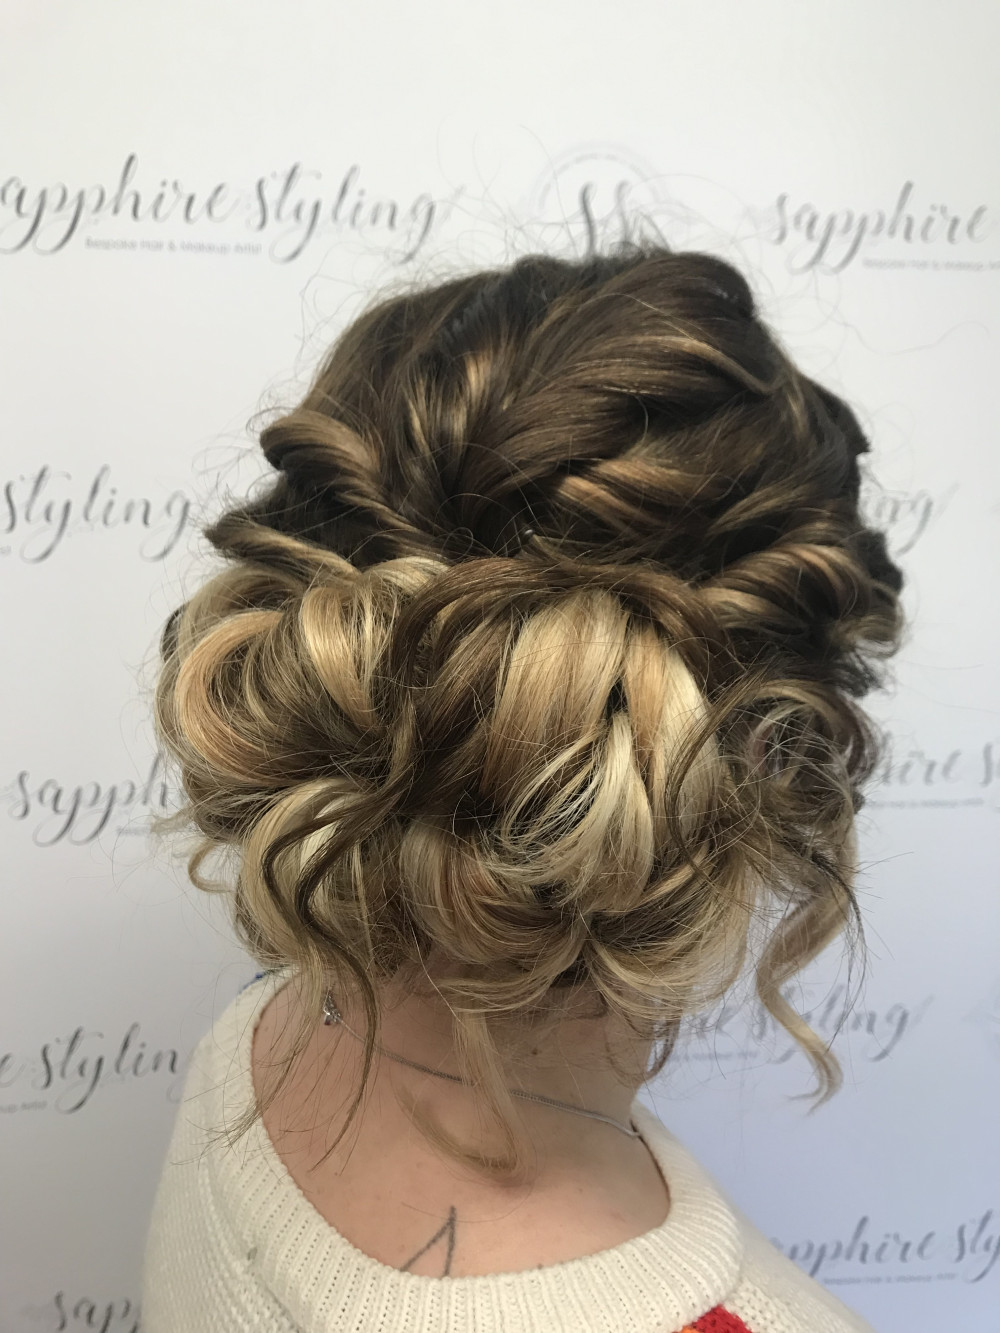 textured up do messy but done !  using extensions for volume and adding colour to see detail - Make Me Bridal Artist: Sapphire Styling hair and makeup . #bridalhair #weddinghair #texturedupdo #upstyle